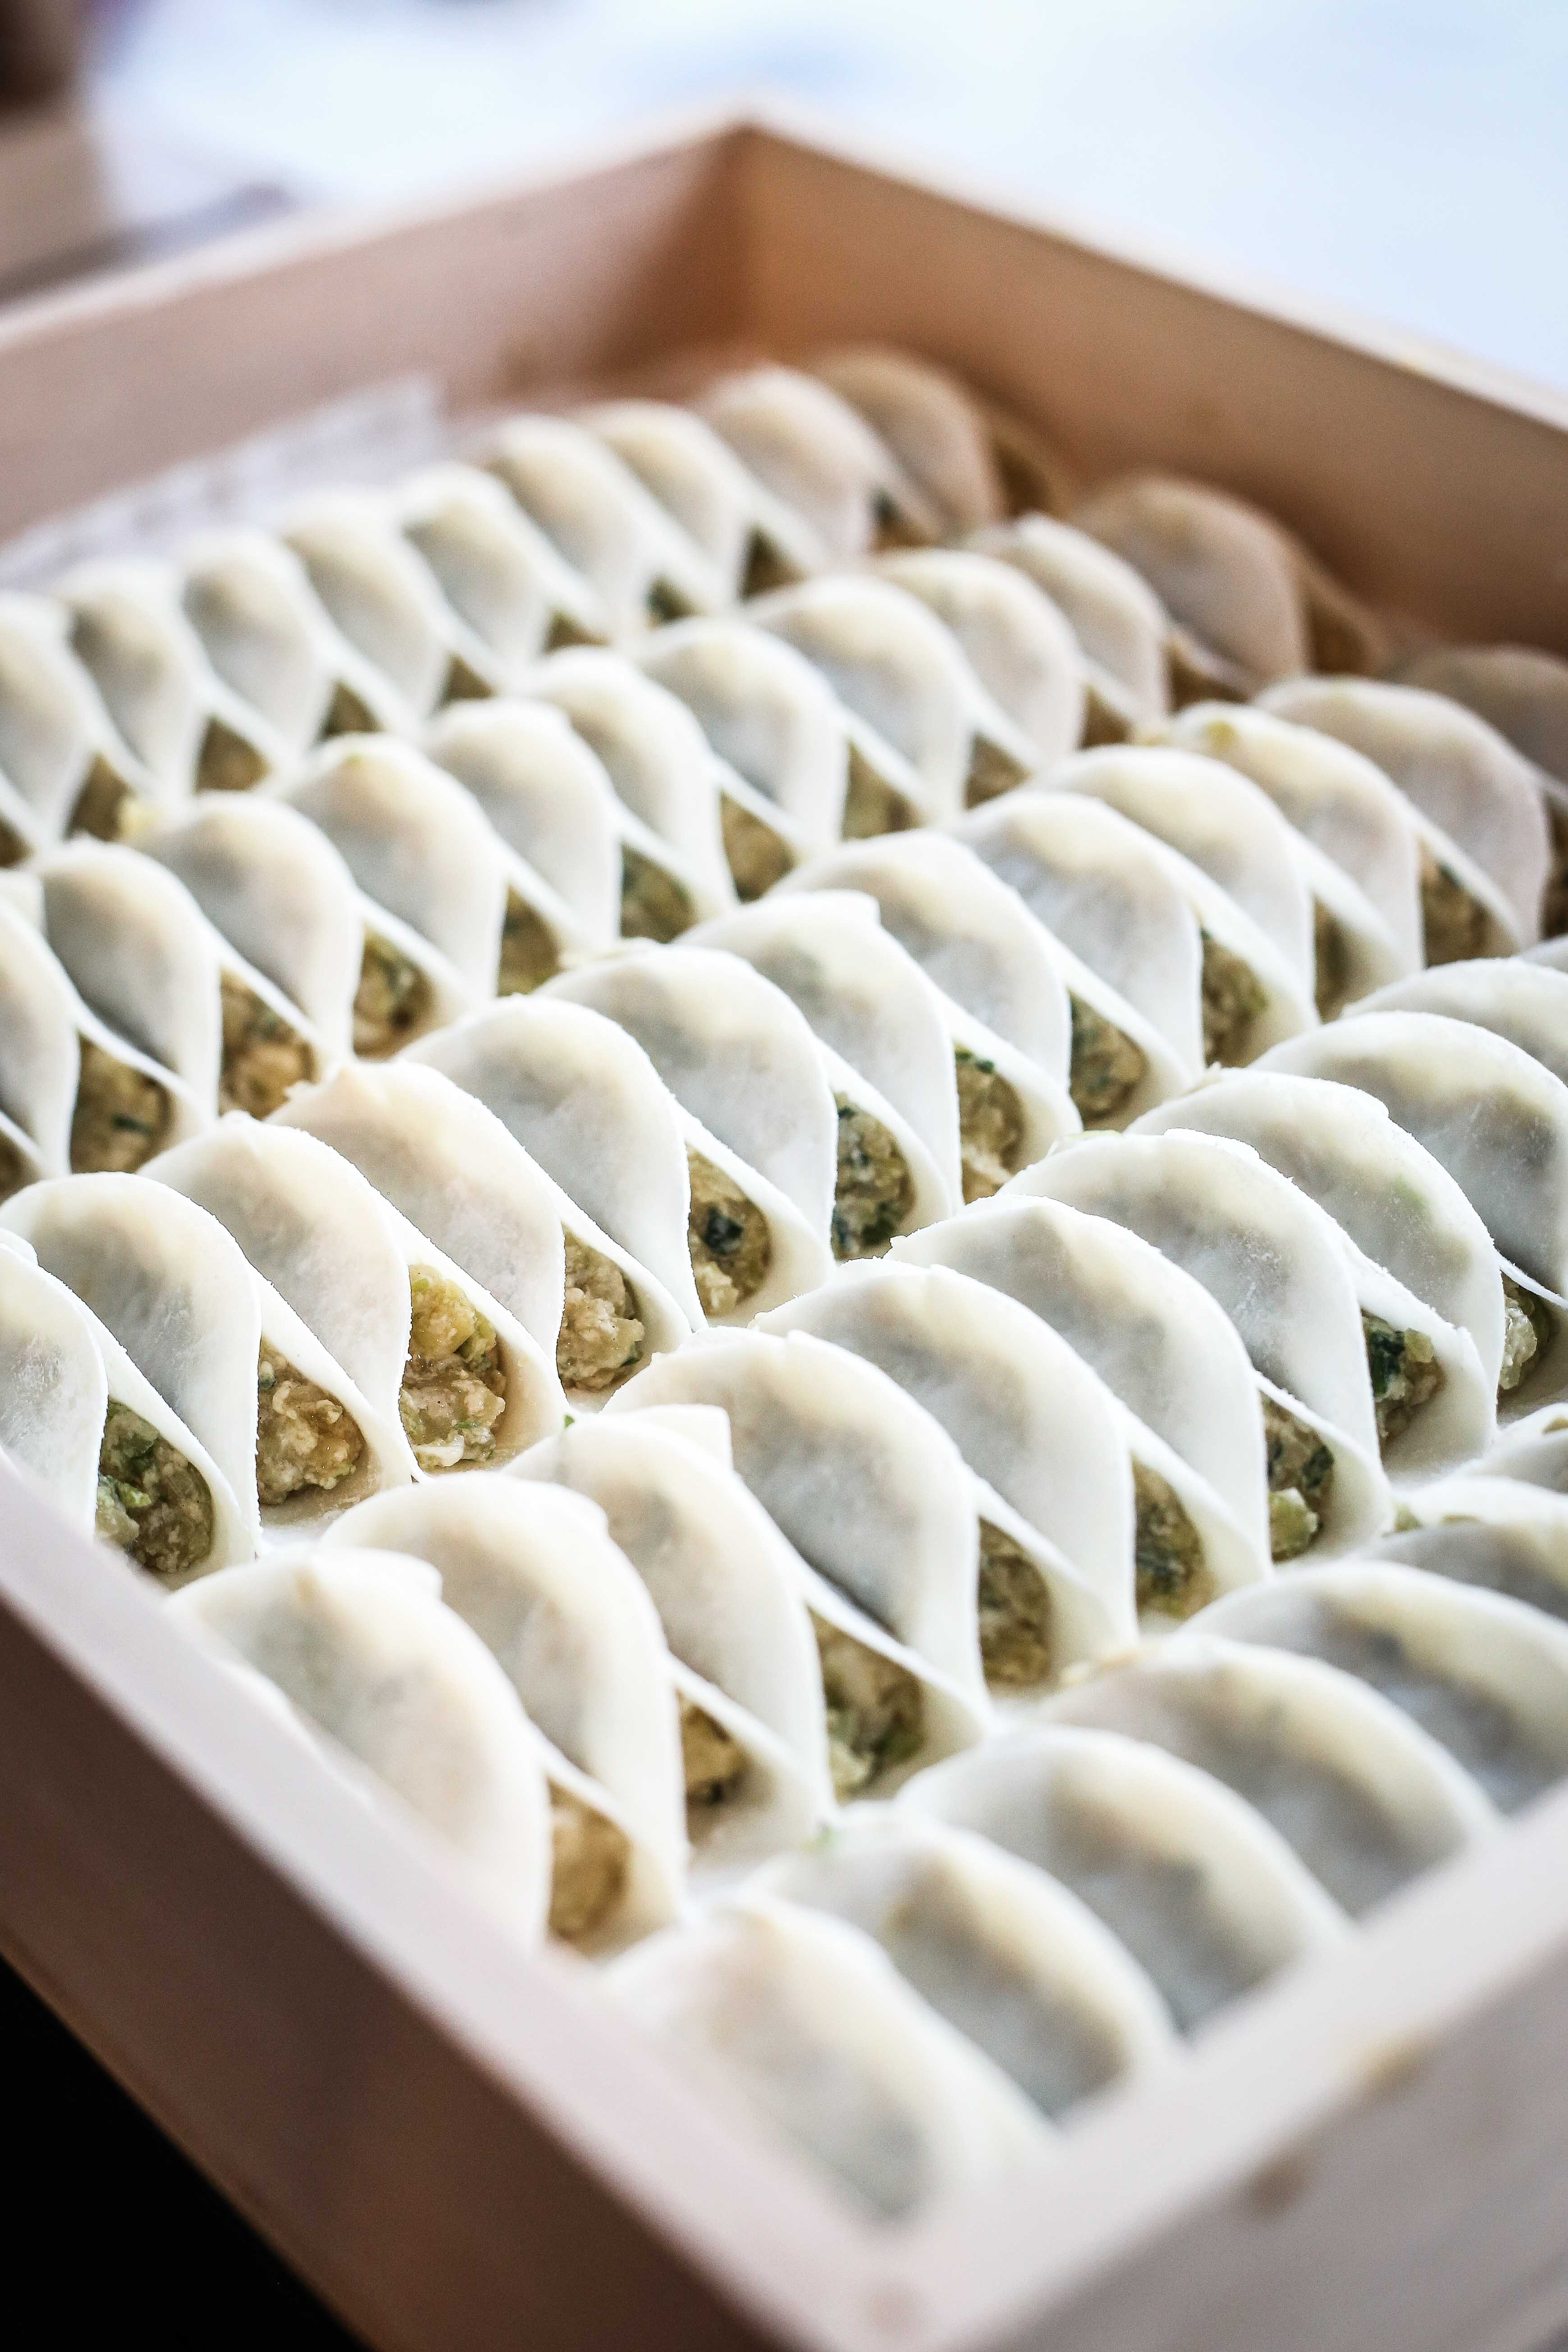 In Japan's Chao Chao Gyoza, 3,000 pieces of gyoza could be sold in a day.